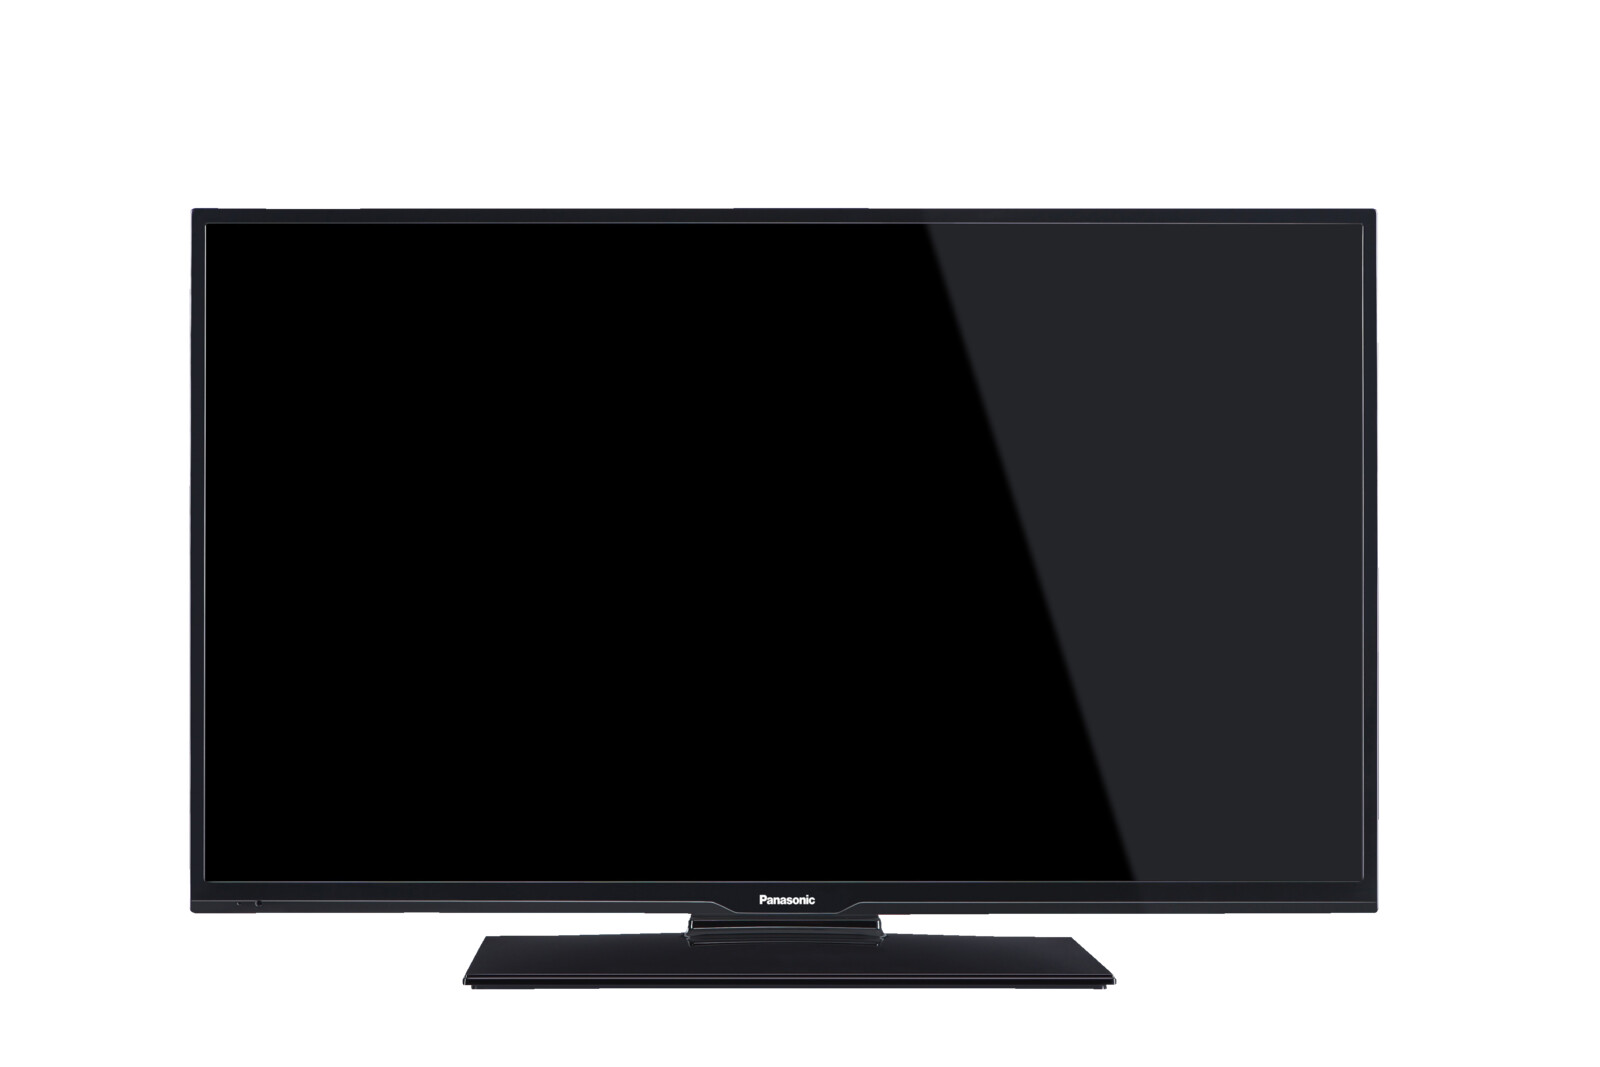 panasonic tx 24dw334 led tv flat 24 zoll hd ready. Black Bedroom Furniture Sets. Home Design Ideas